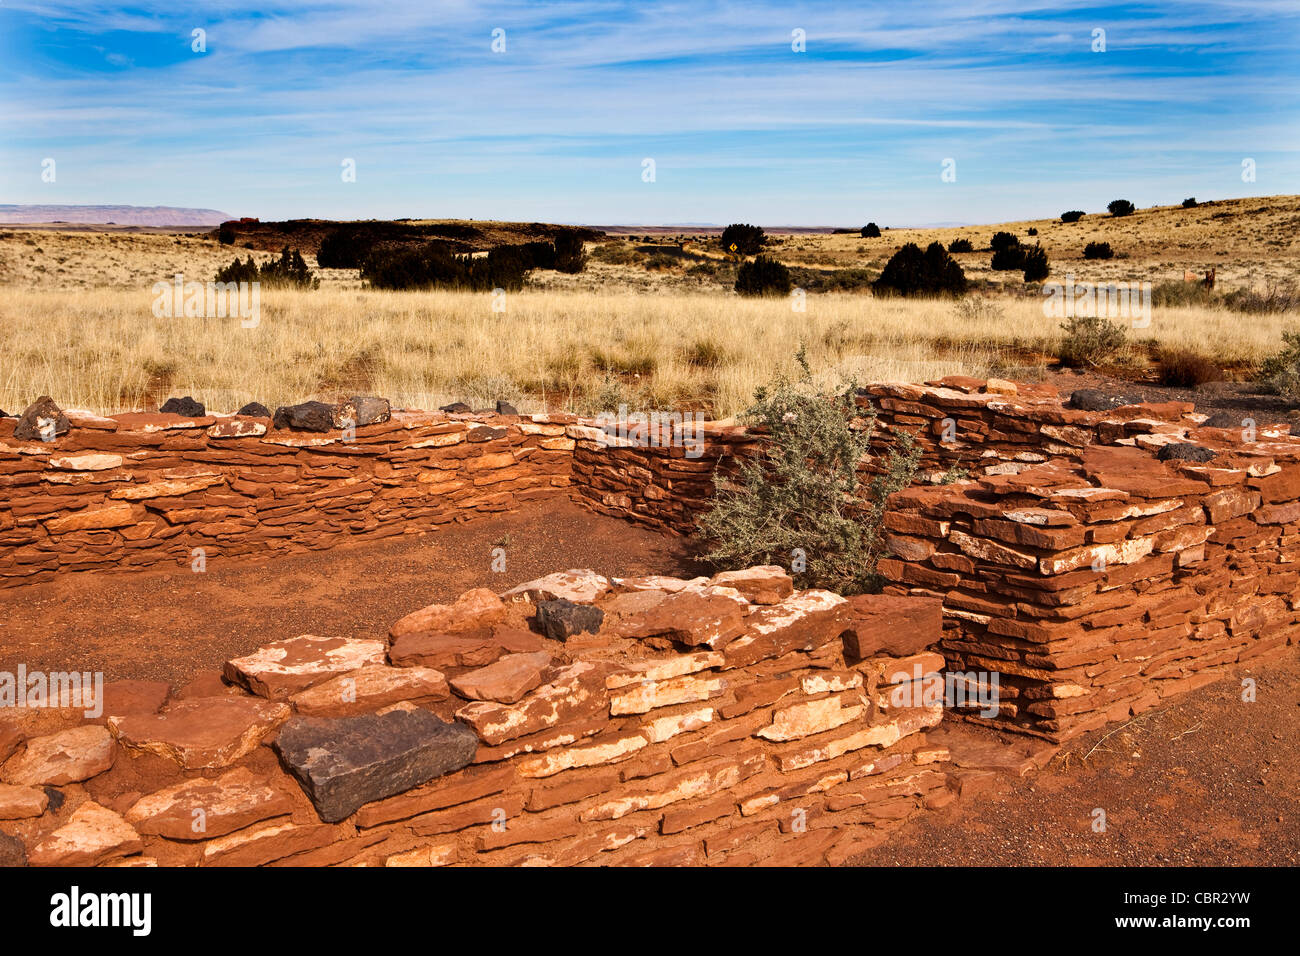 Nalakihu Hopi Ruins, Wupatki National Monument, Arizona - Stock Image